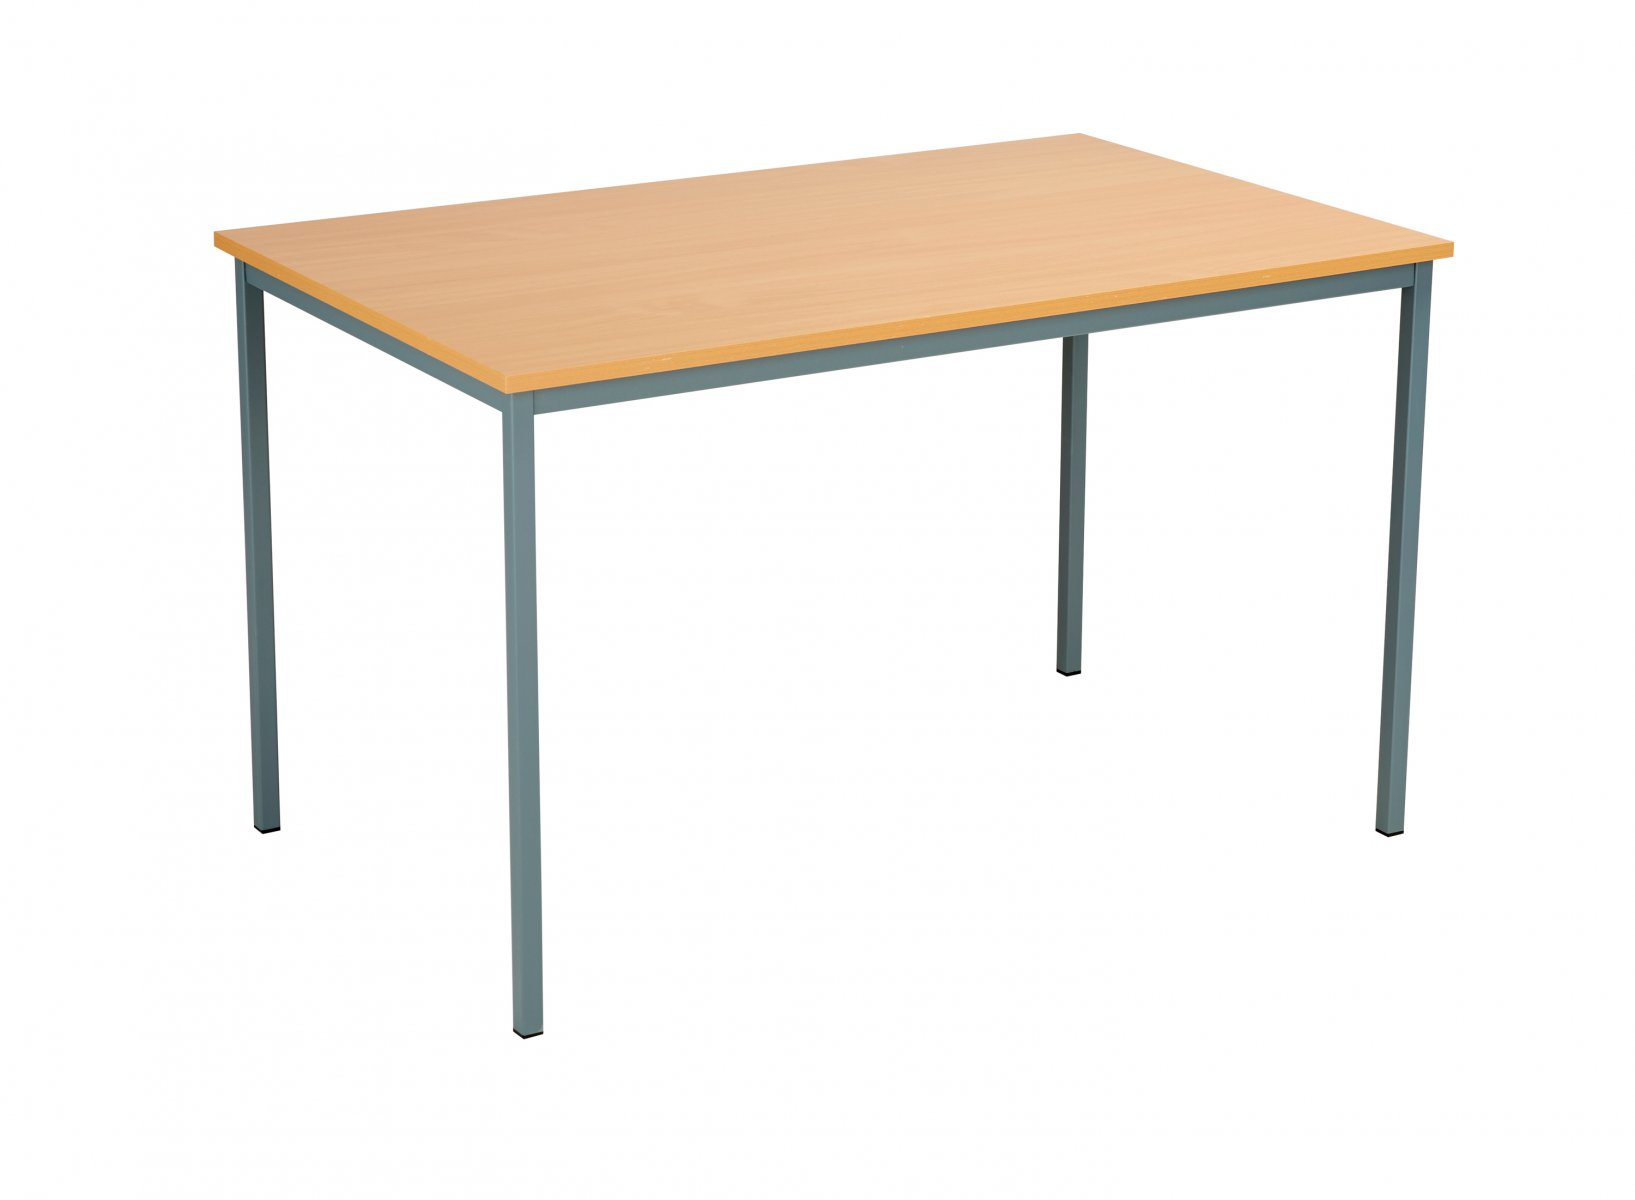 Eco 18 Rectangular 120 Multi-Purpose Table - Beech